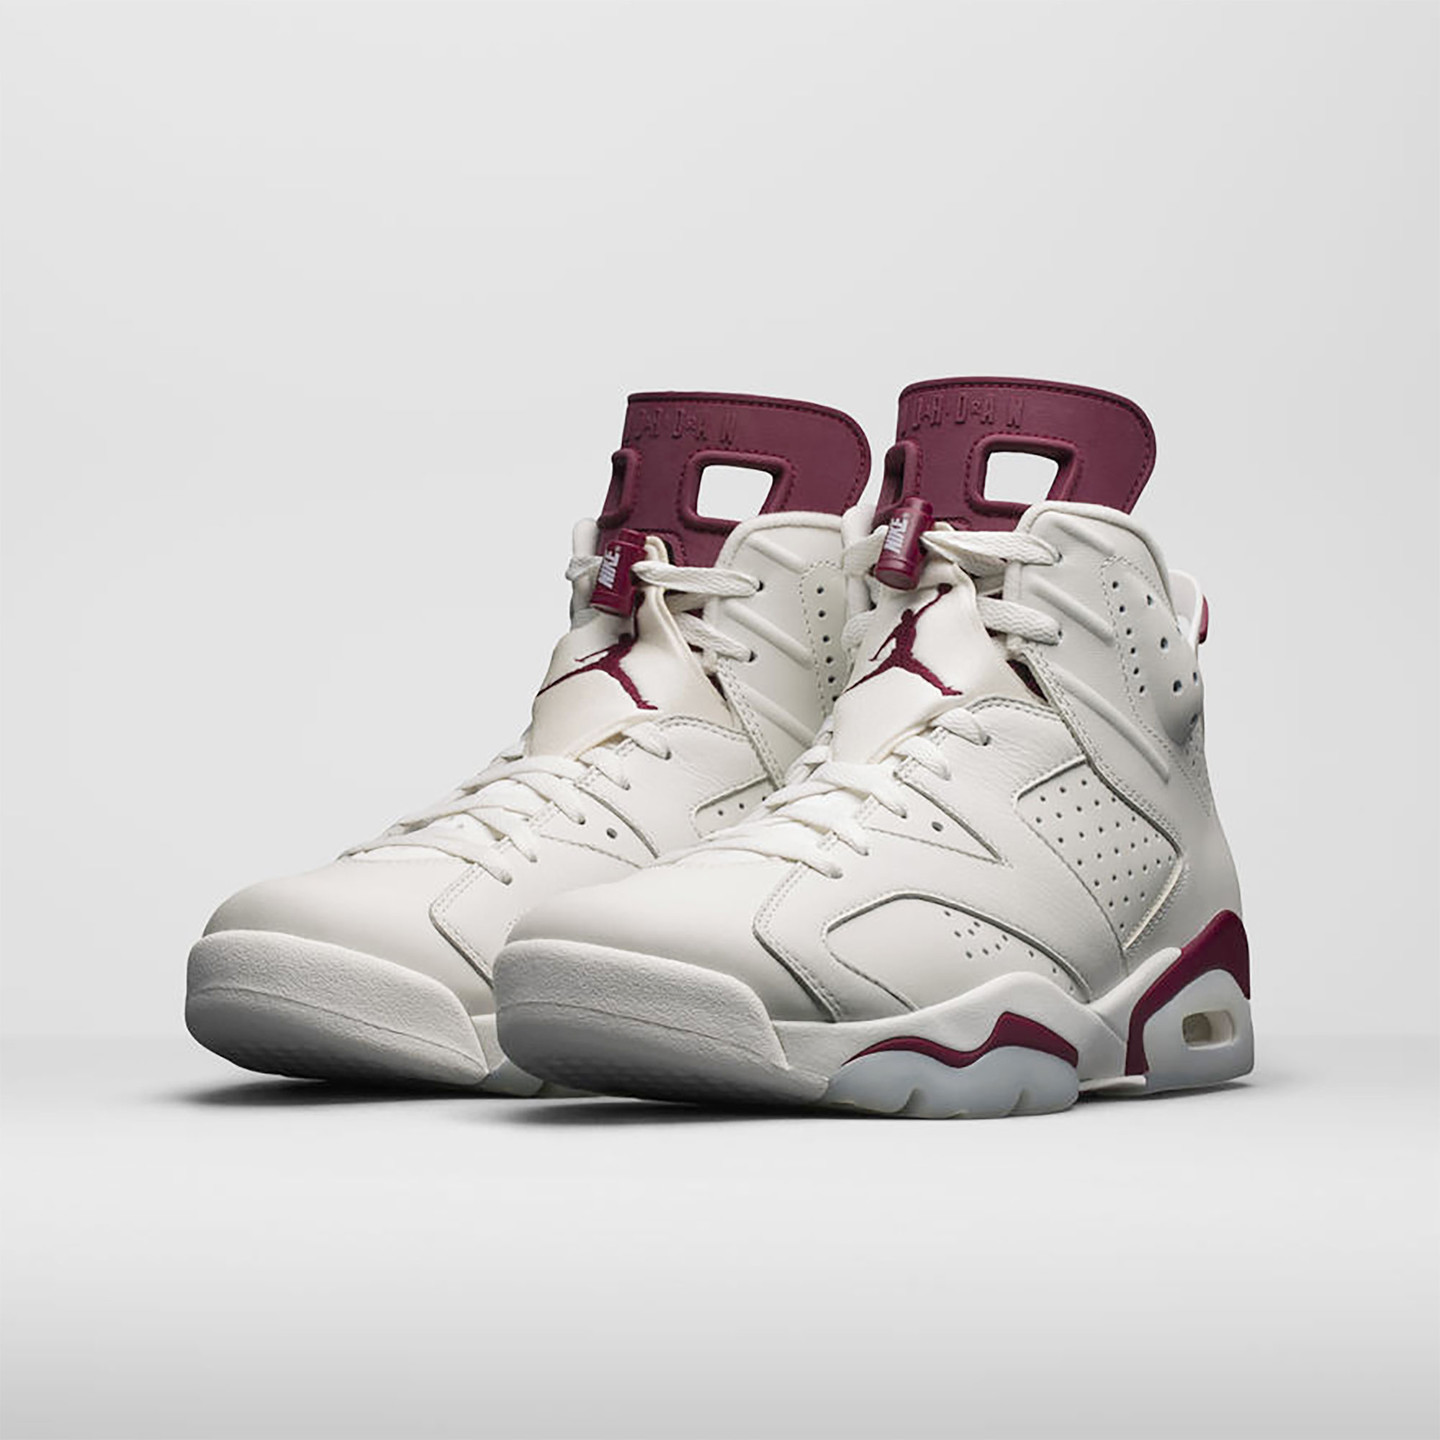 Jordan Air Jordan 6 Retro ´Maroon´ Off White / New Maroon 384664-116-47